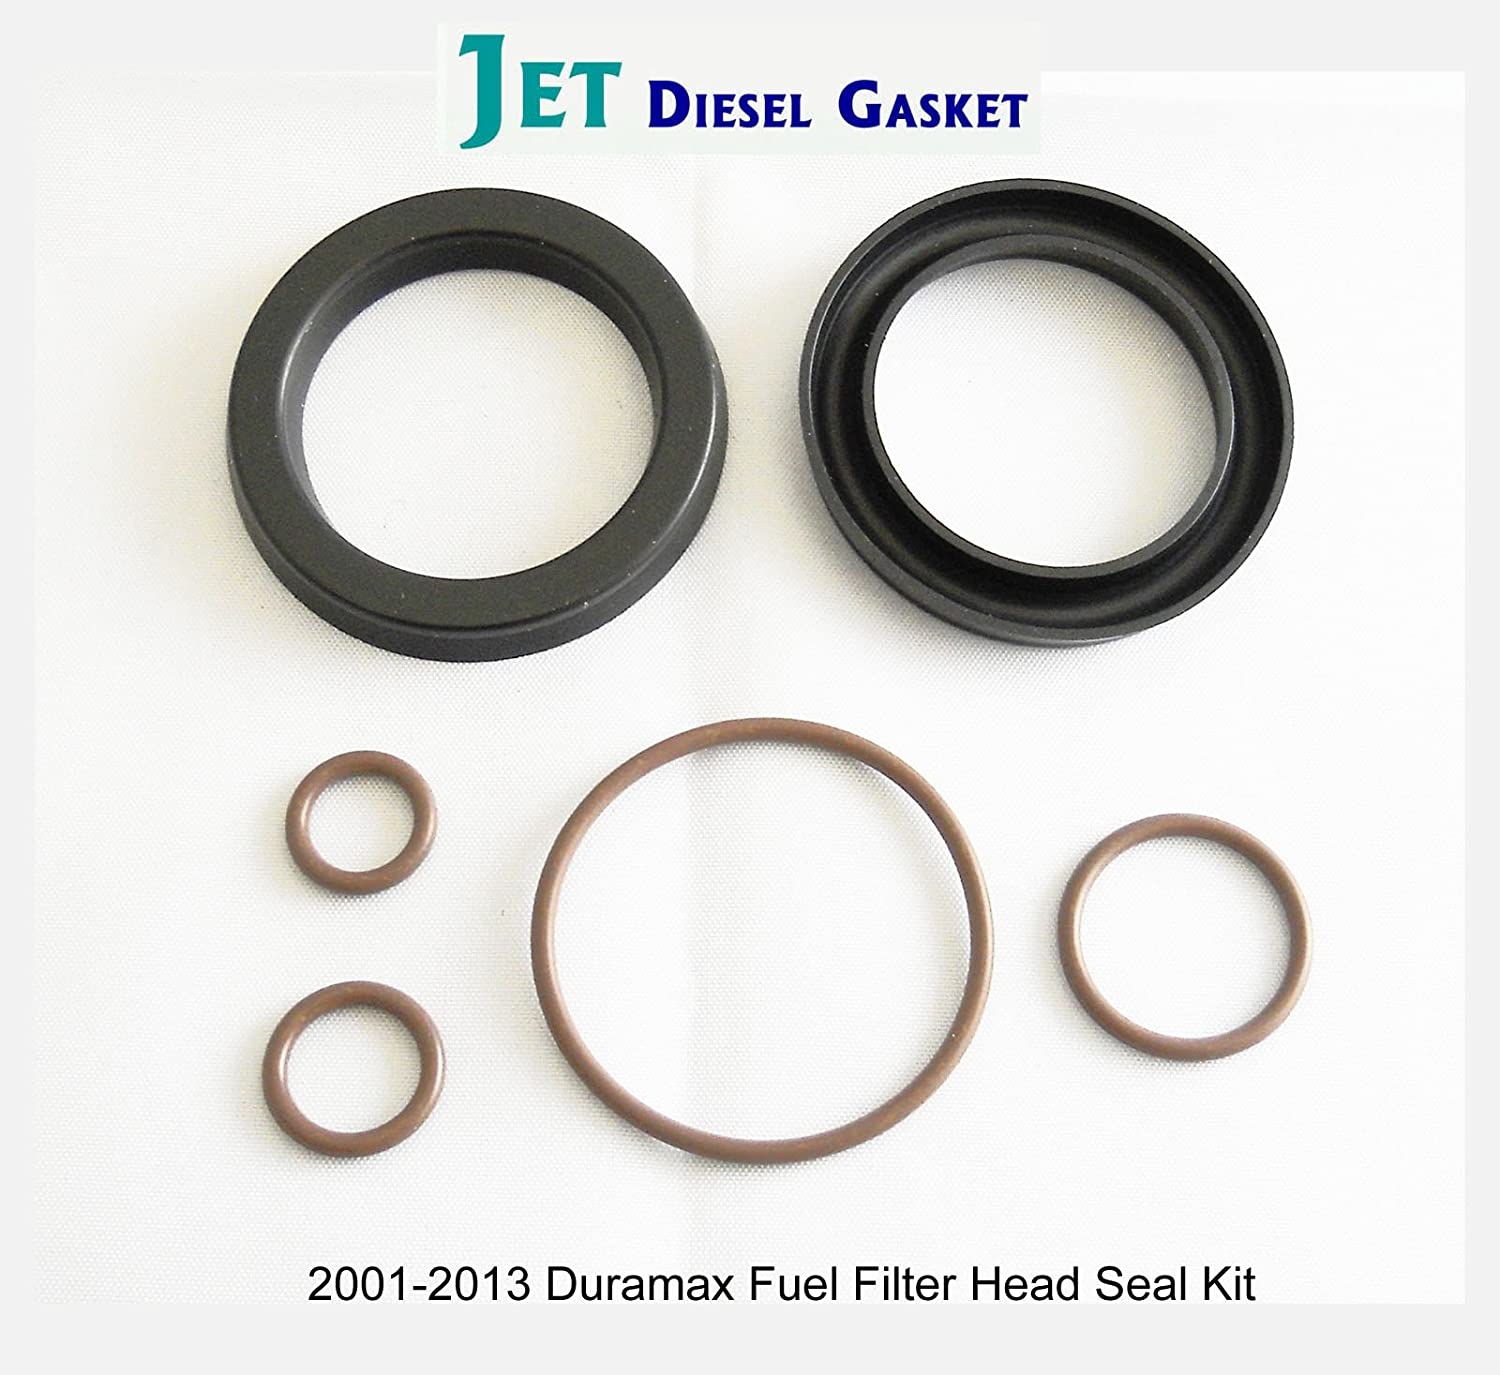 Deluxe Fuel Filter Head Rebuild Seal Kit With Viton O Duramax Location Rings For Automotive